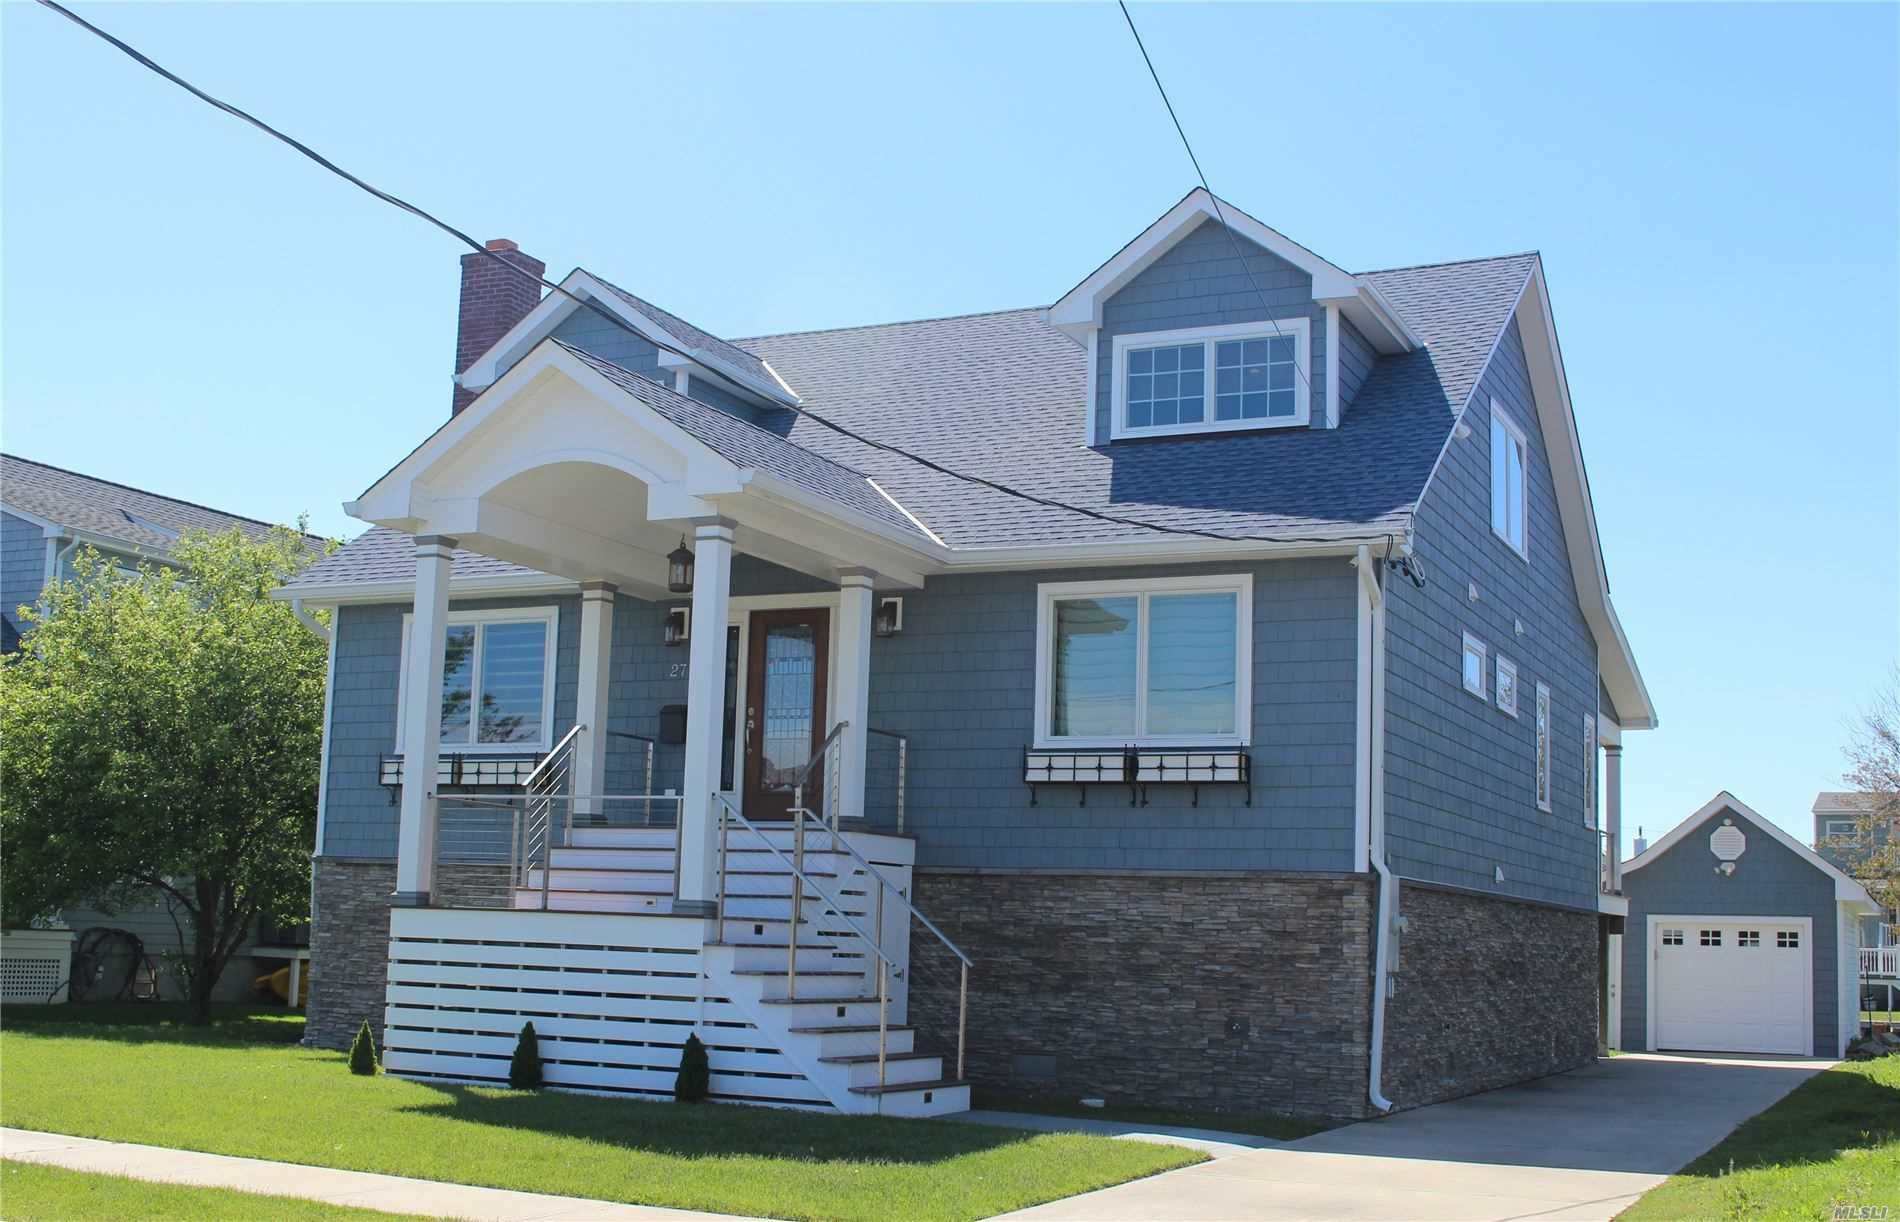 27 S Bay Avenue, Amityville, NY 11701 - MLS#: 3218270